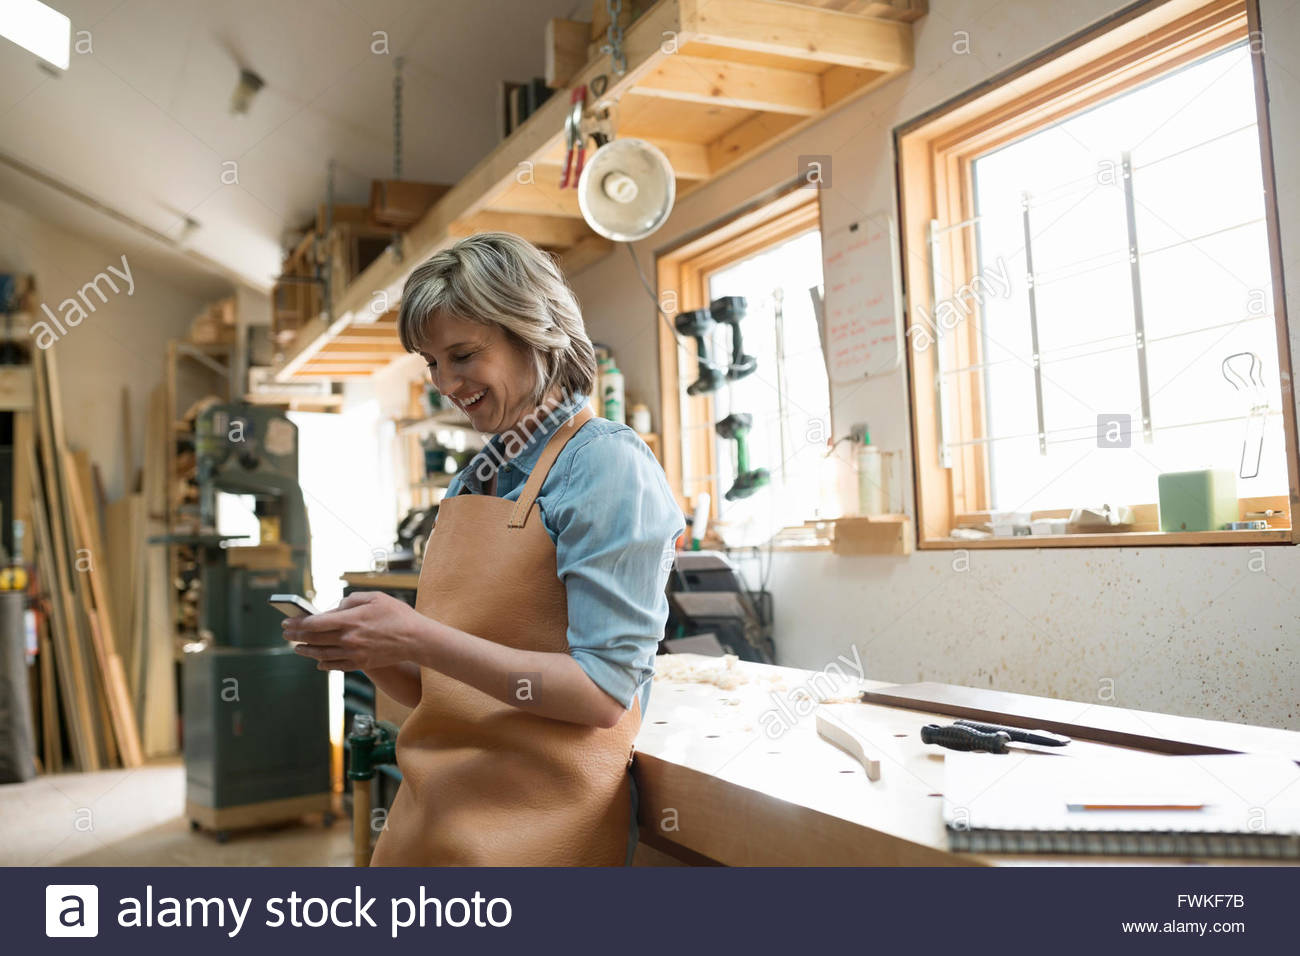 Smiling female carpenter using cell phone in workshop - Stock Image